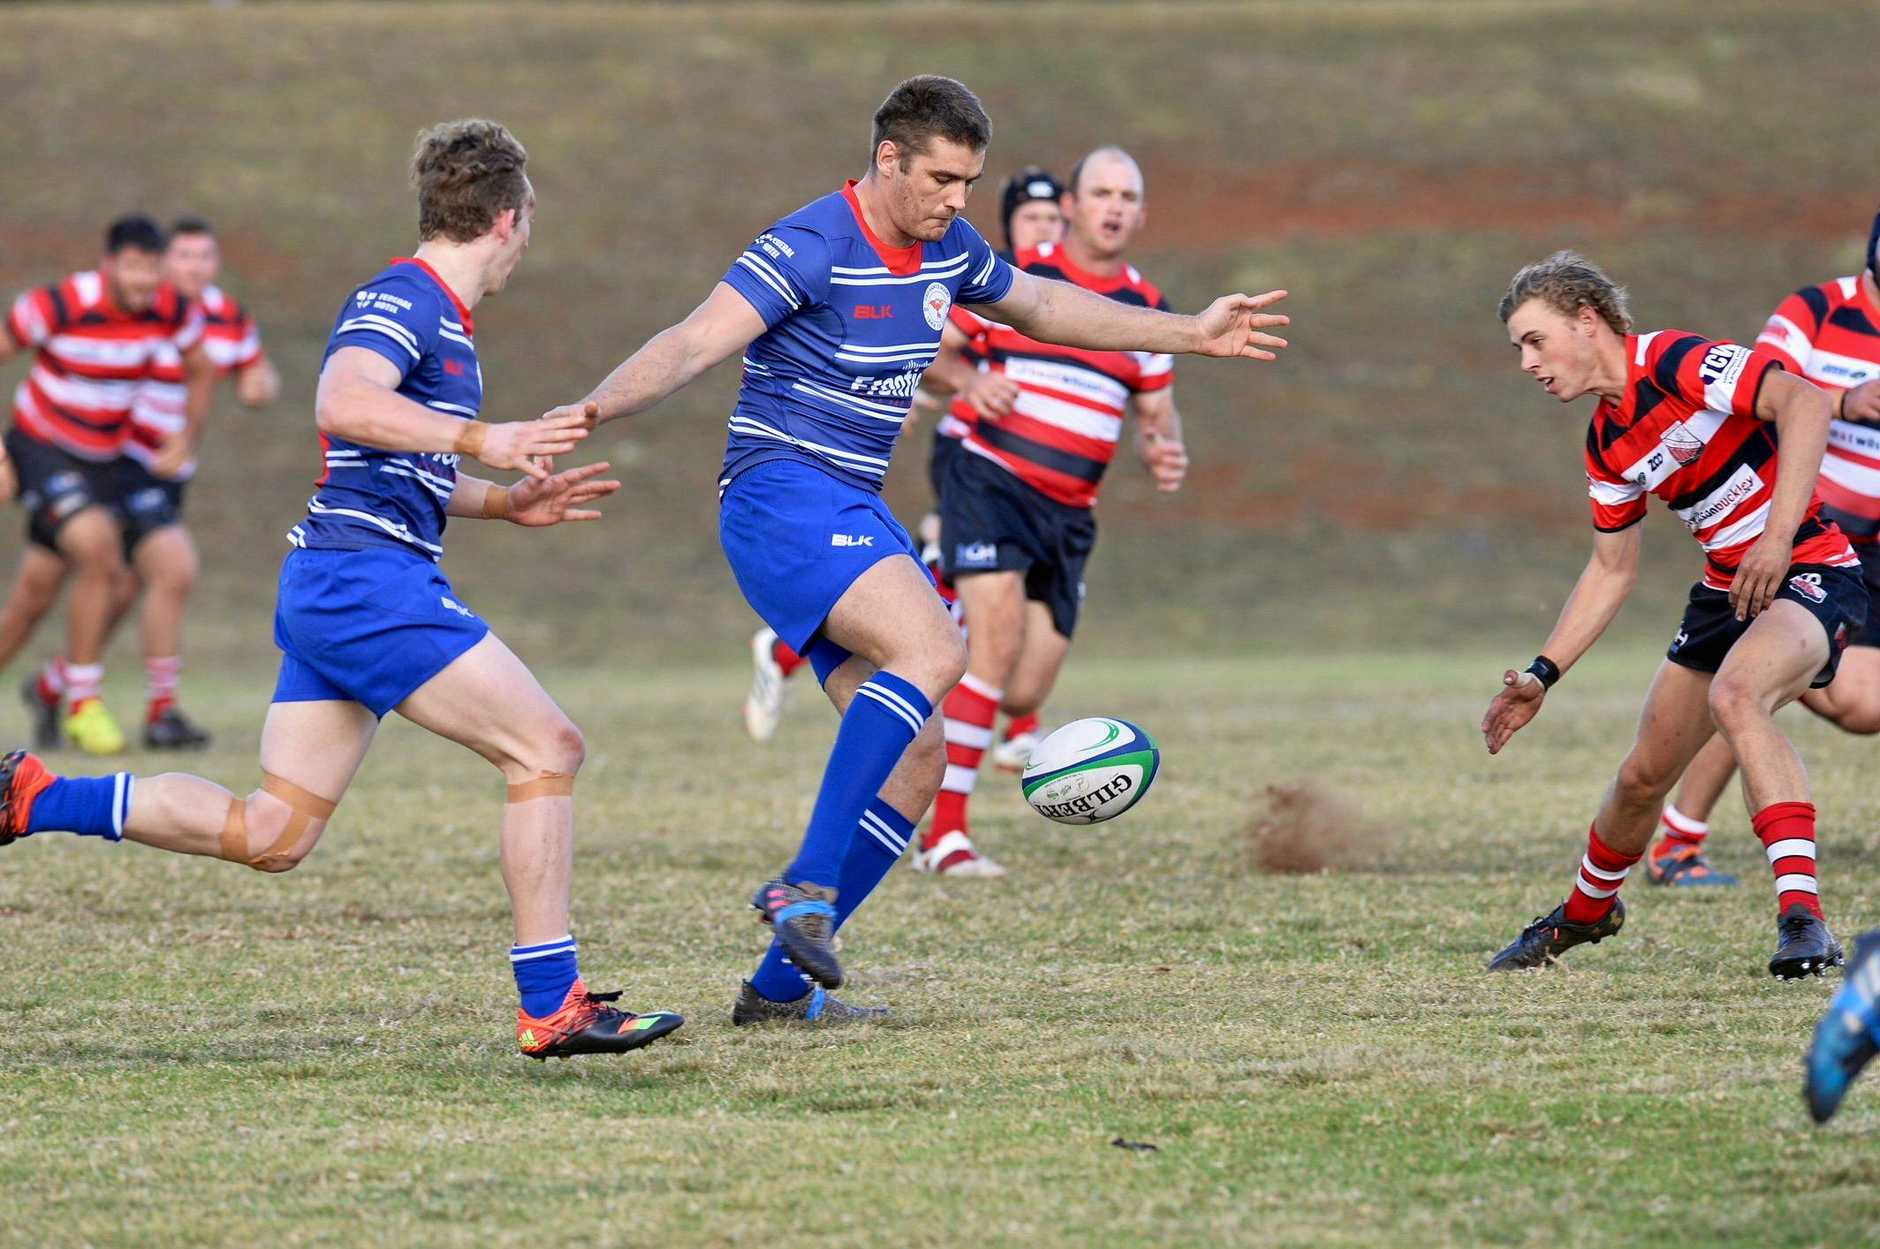 USQ centre Andre van Staden kicks ahead for team-mate Sam Lewis (left) to regather and score Saints first try in their round-six Risdon Cup win over Toowoomba Rangers today at USQ Rugby Oval.